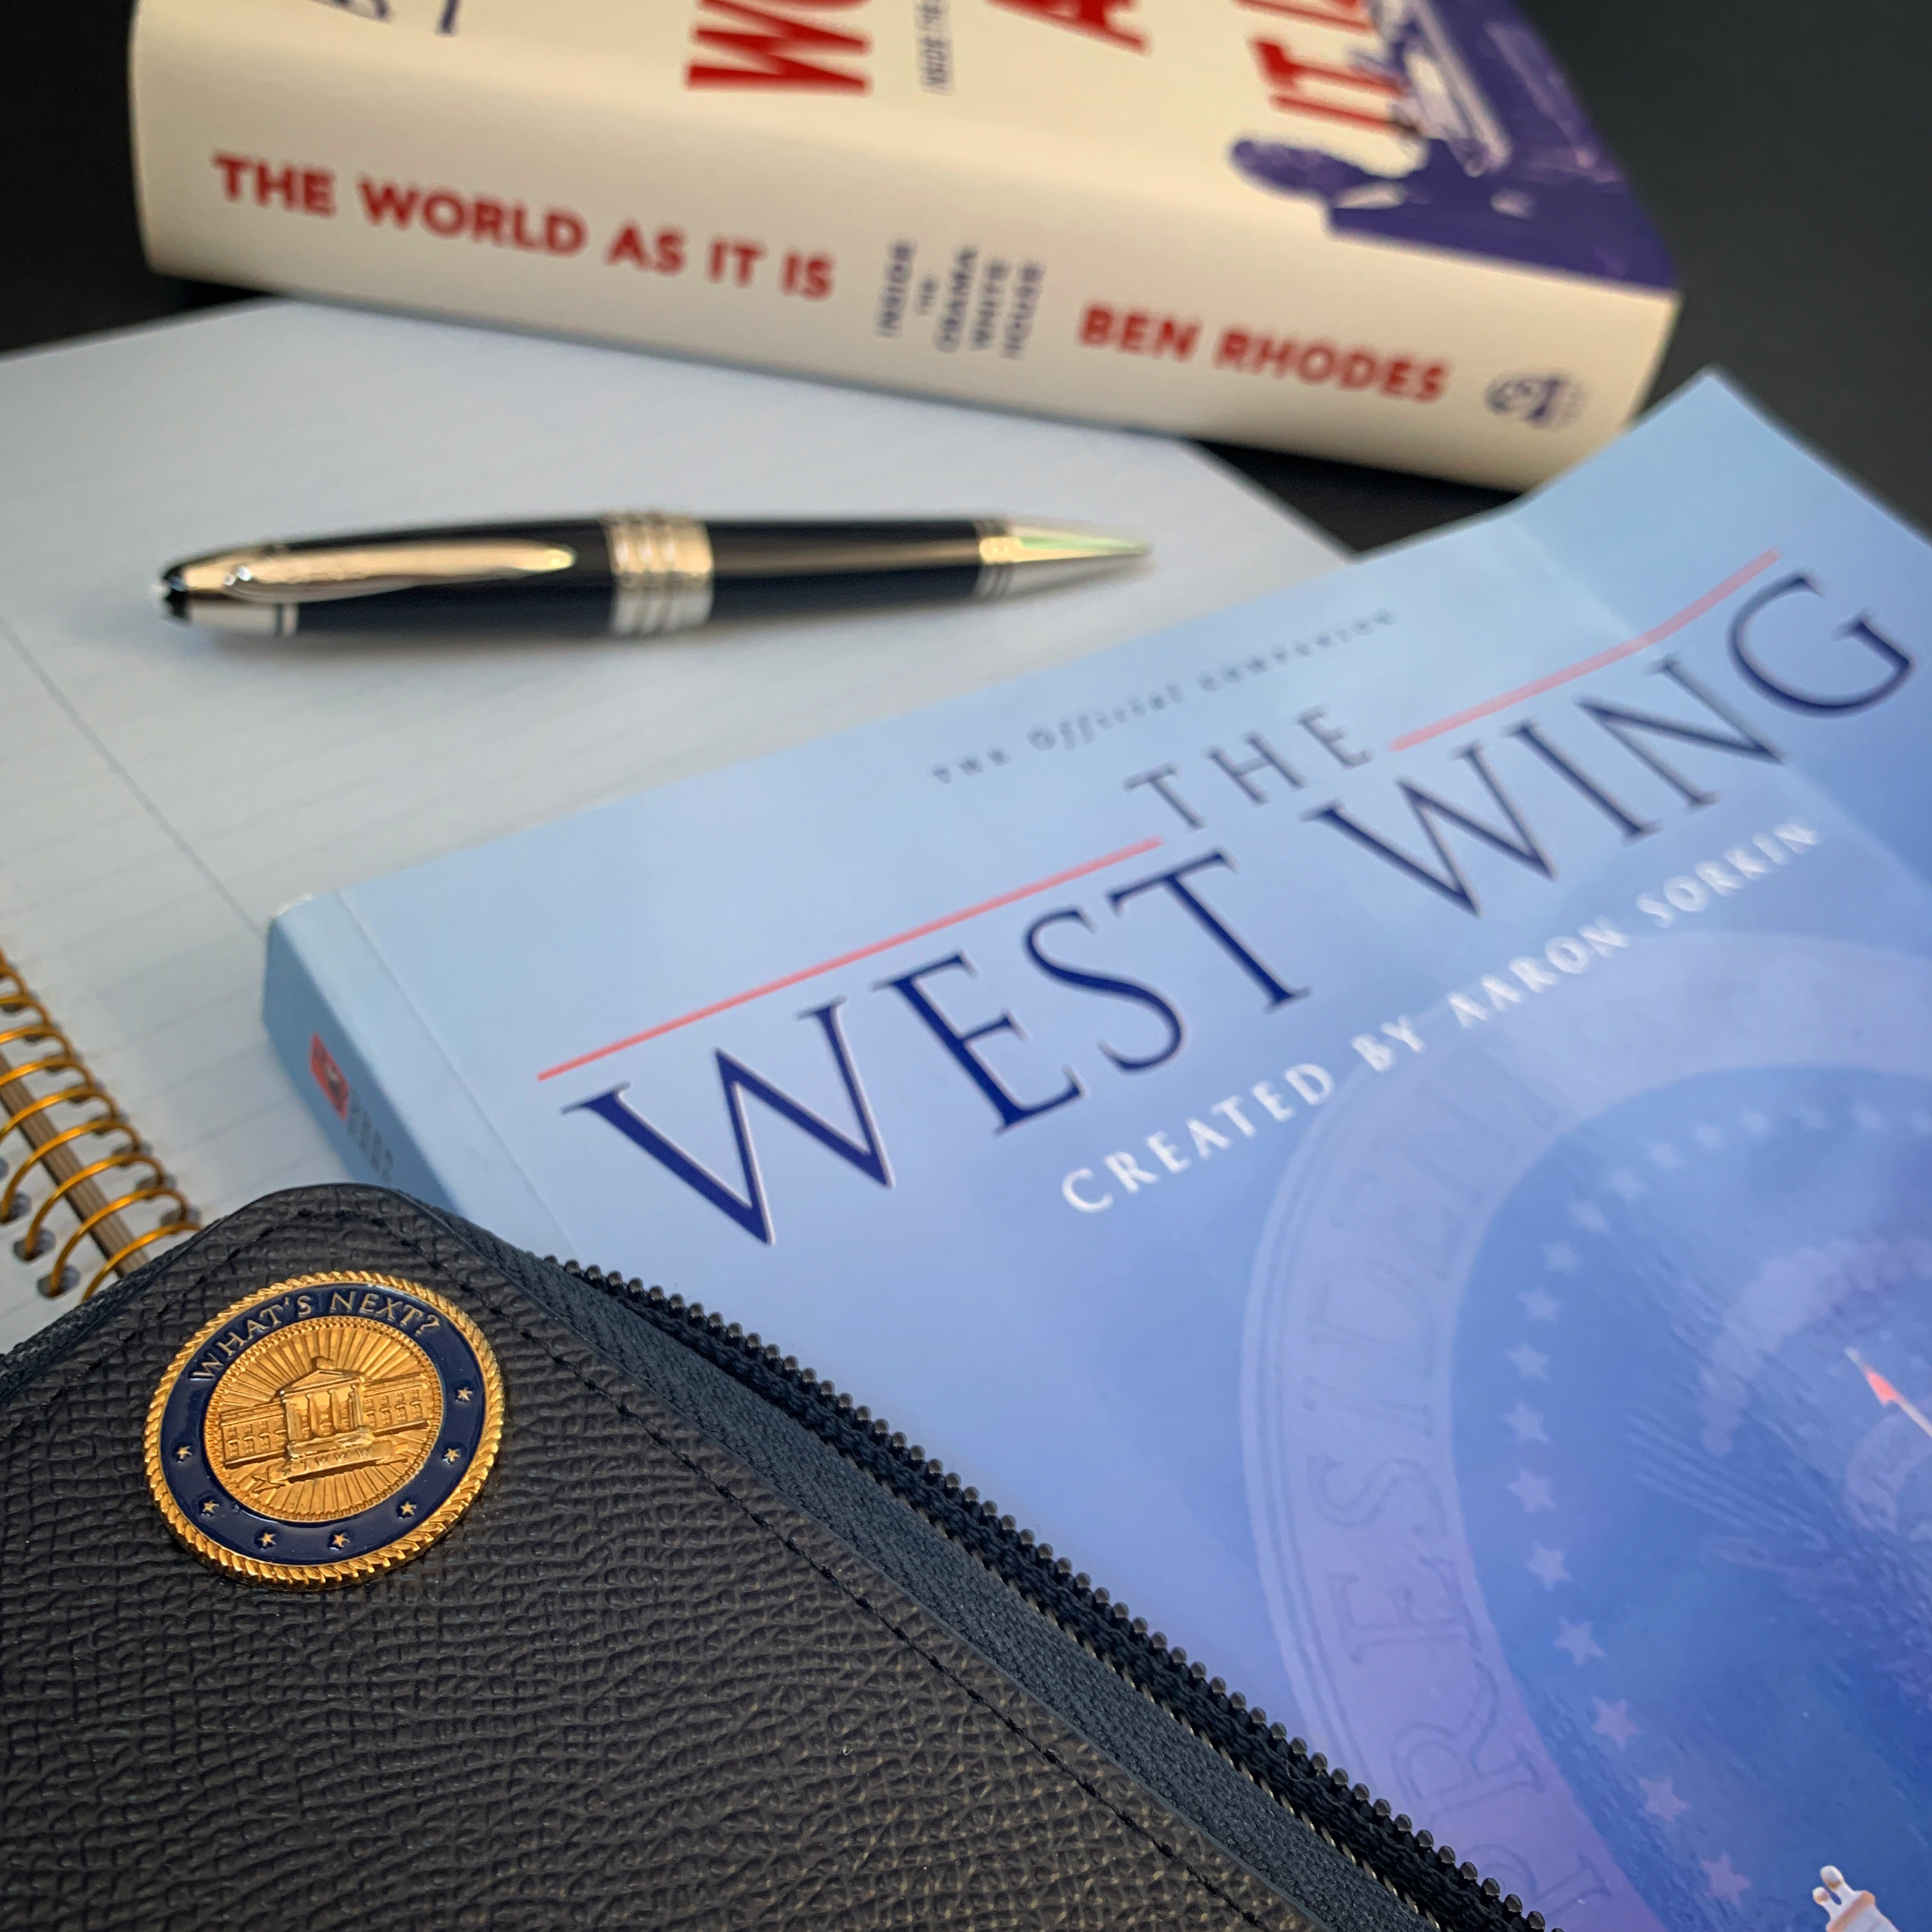 west wing jeremy waite tenwords